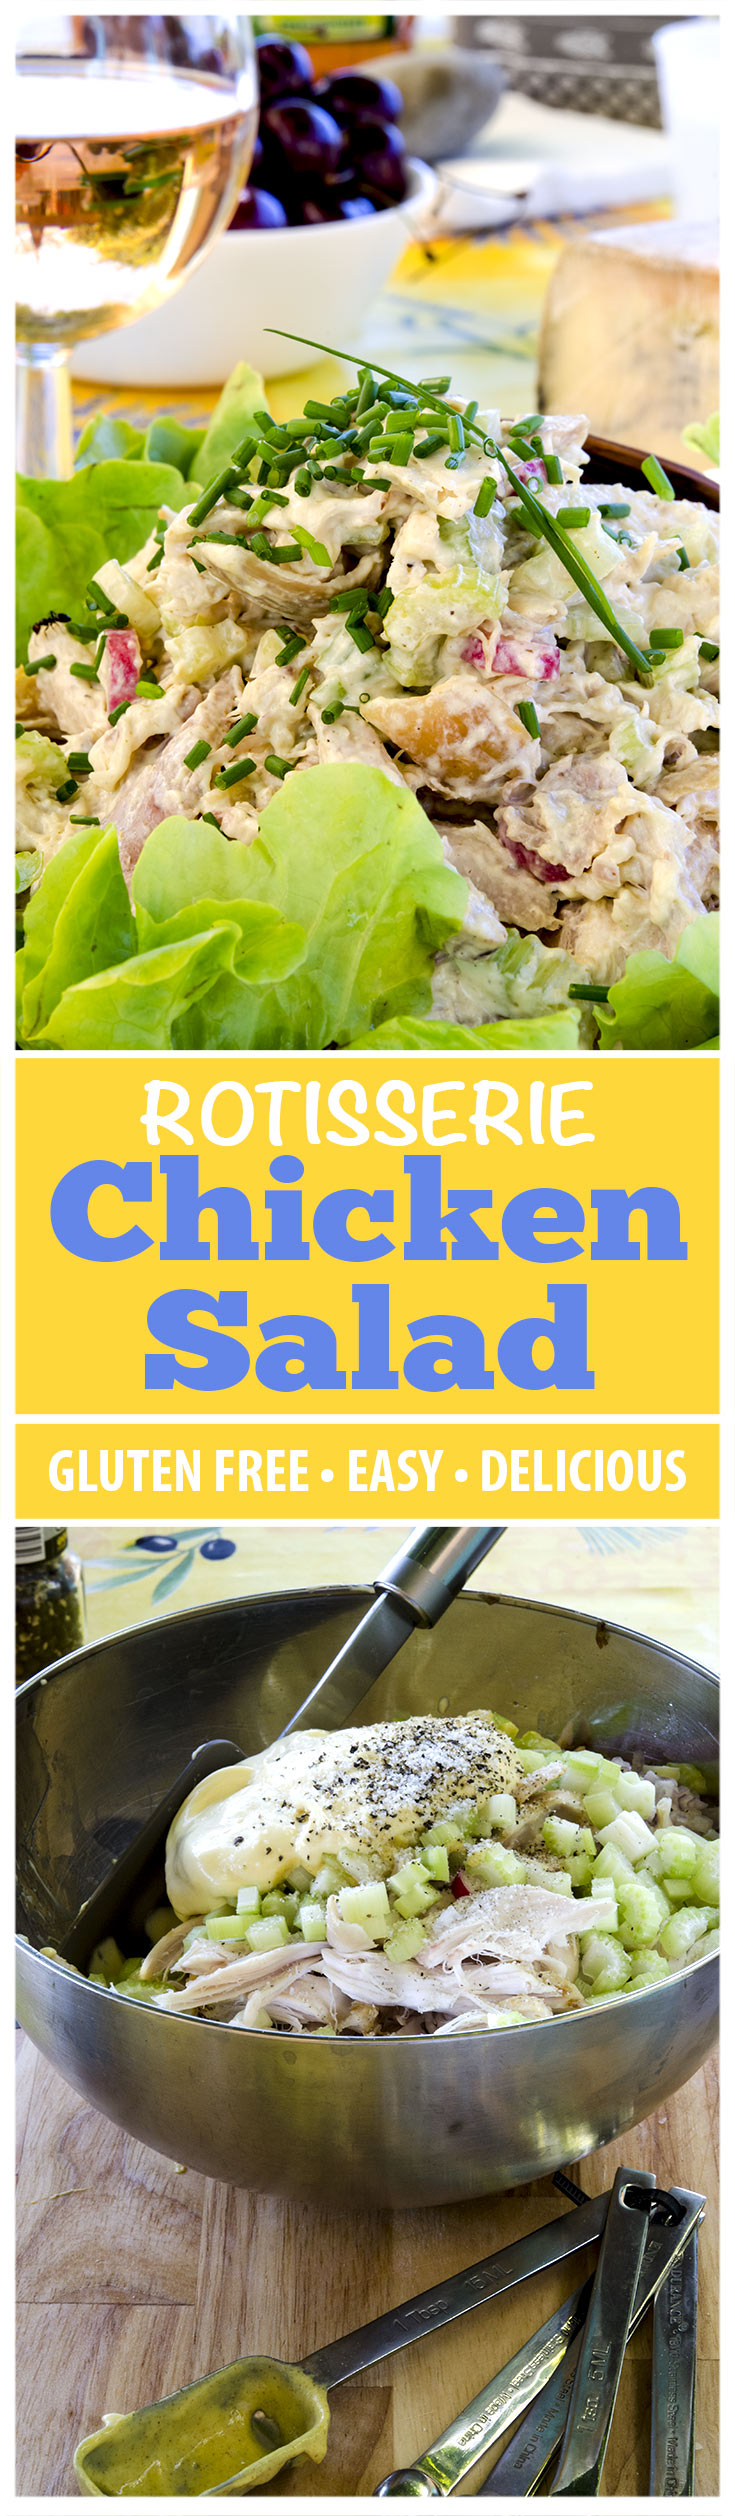 The best rotisserie chicken salad recipe... and super easy too. Find out how to wow all your friends and family with this delicious recipe.